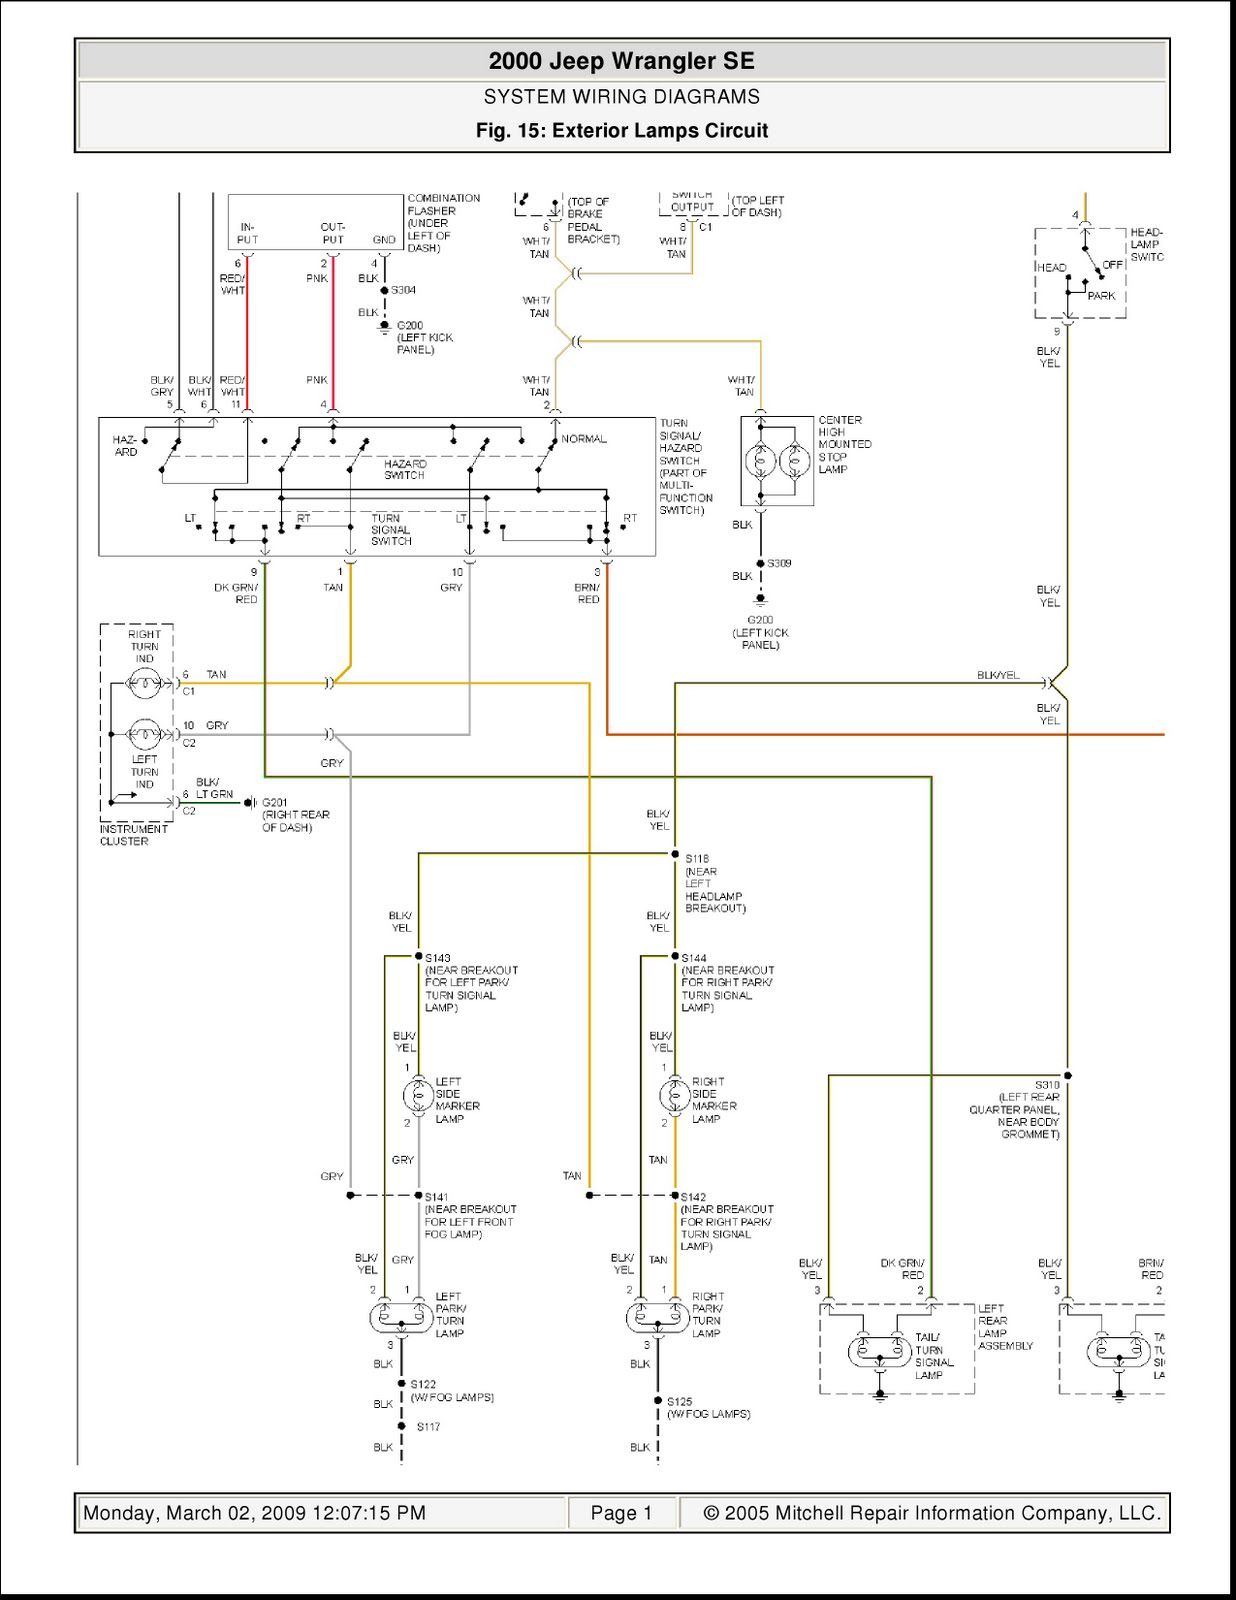 small resolution of 2000 jeep wrangler se system wiring diagrams exterior 2004 jeep wrangler wiring 2004 jeep wrangler wiring